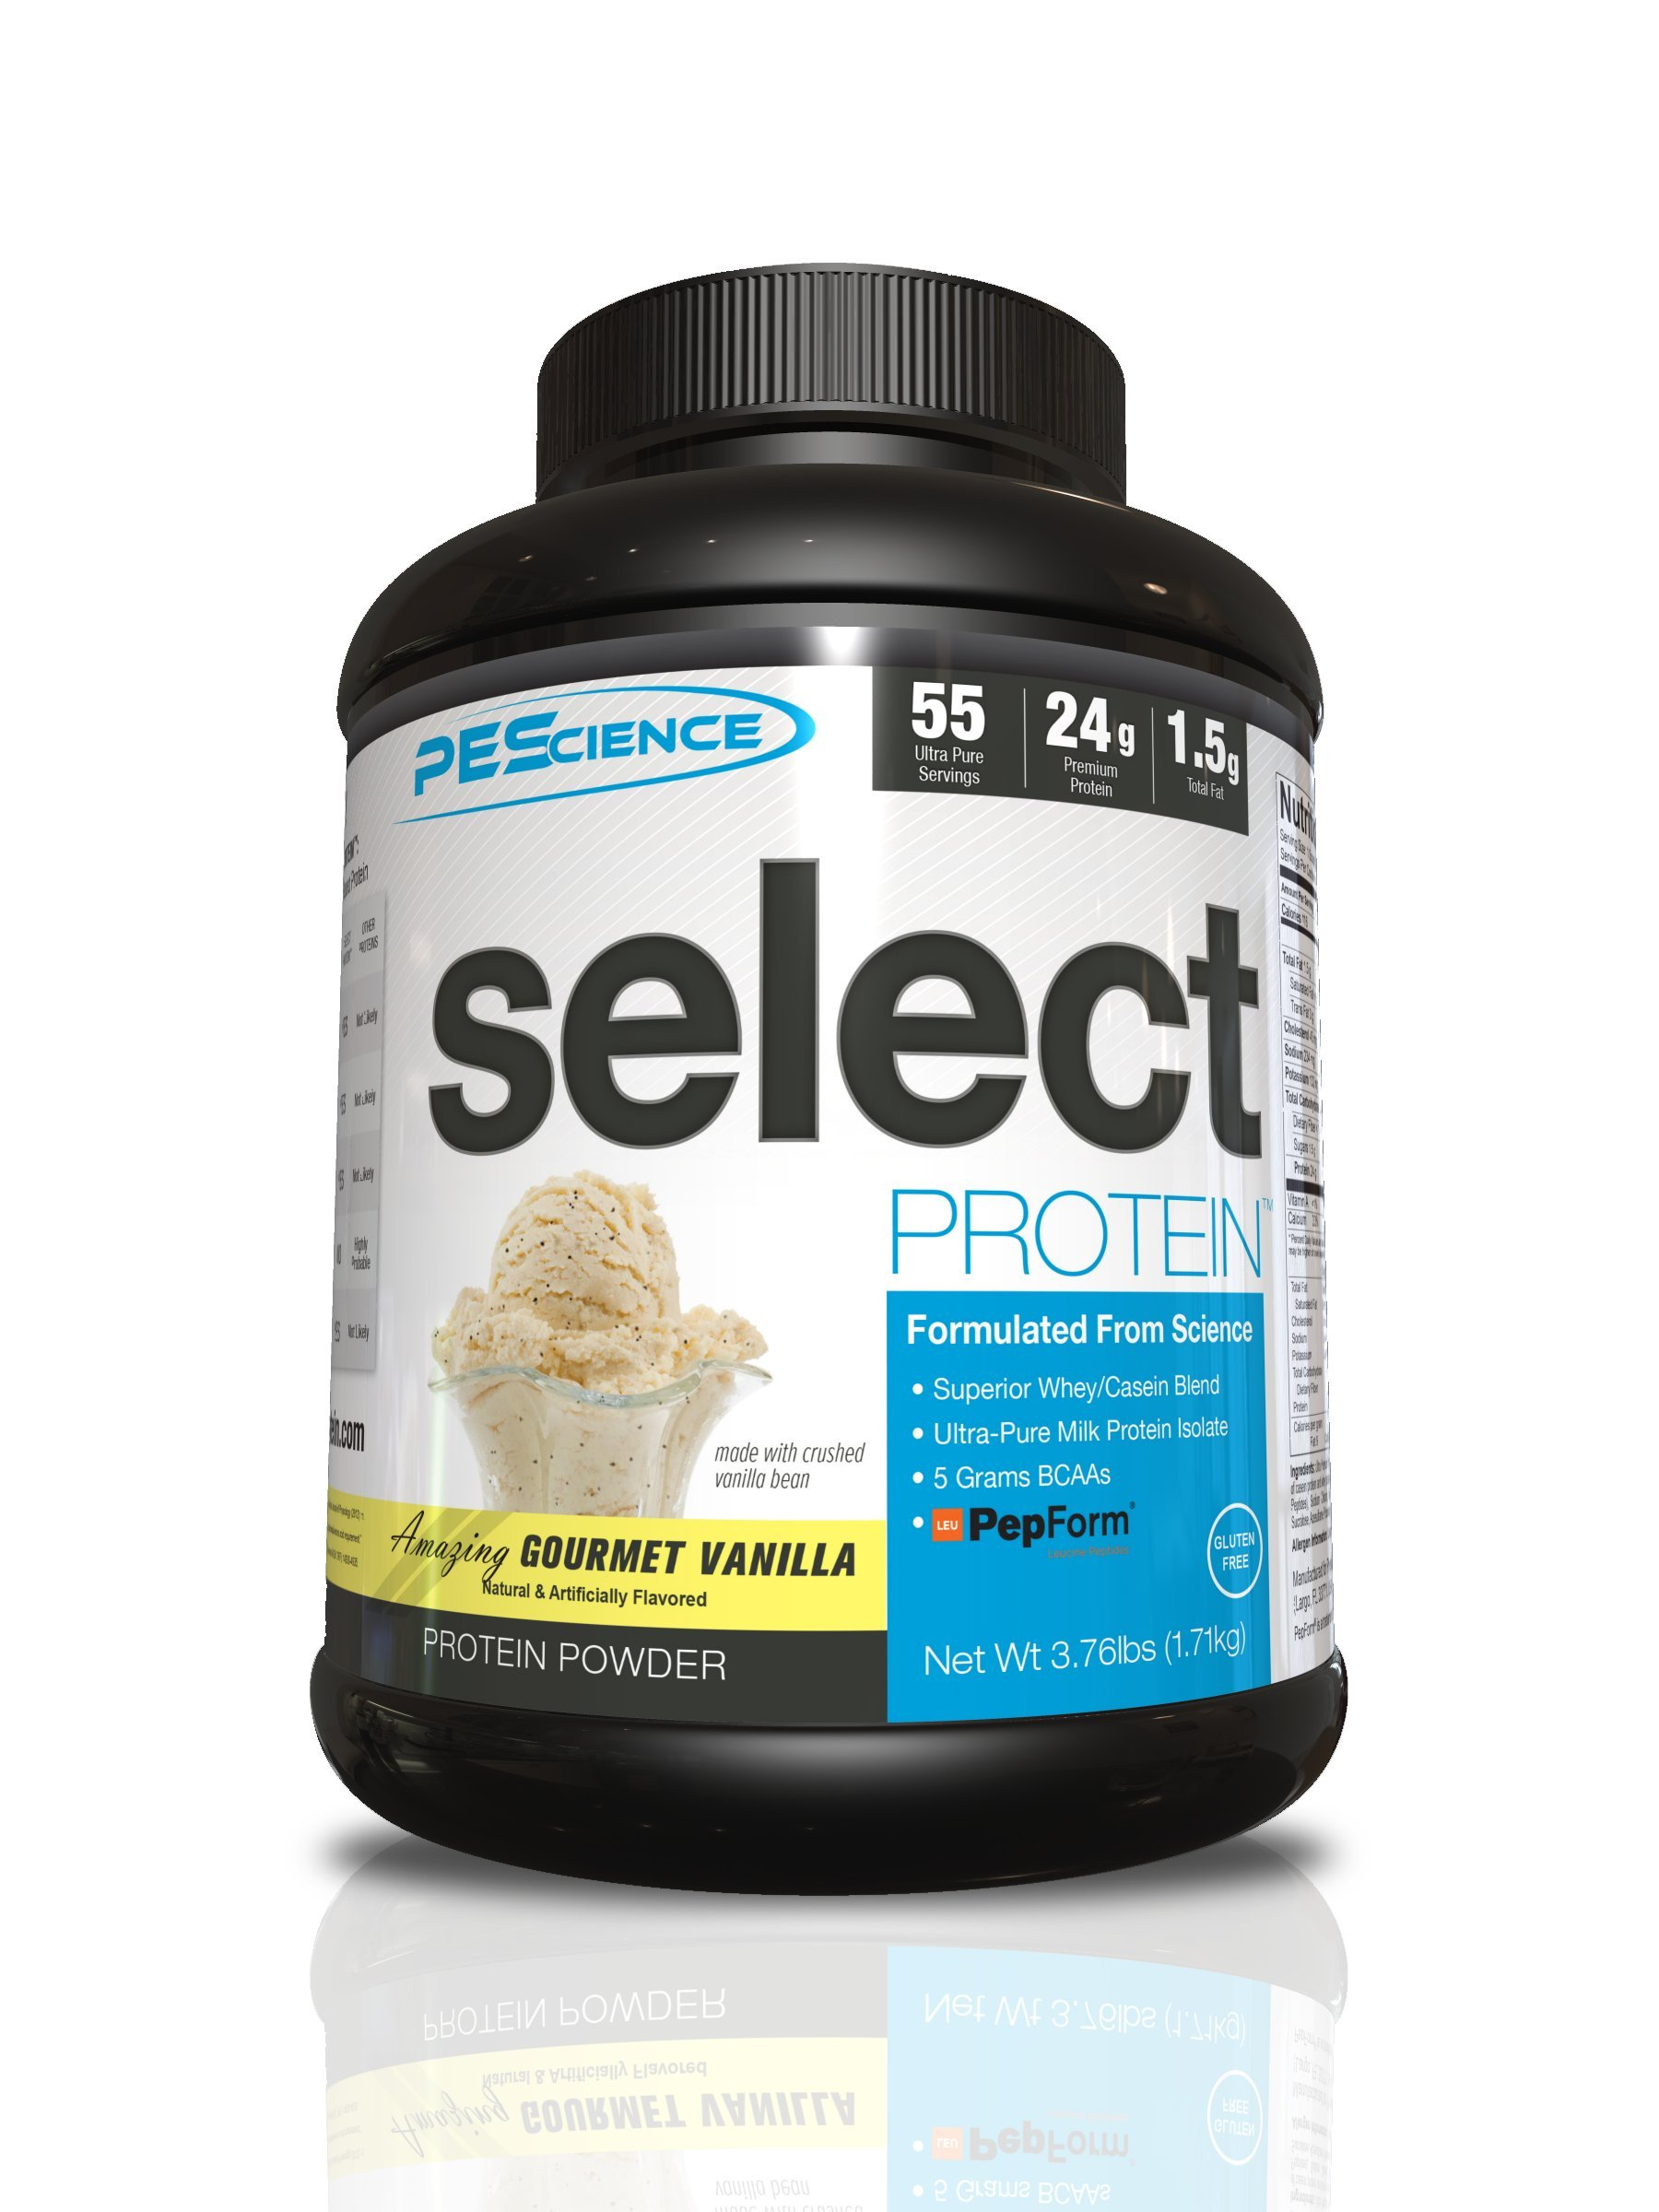 PEScience Select Low Carb Protein Powder, Vanilla, 55 Serving, Keto Friendly and Gluten Free